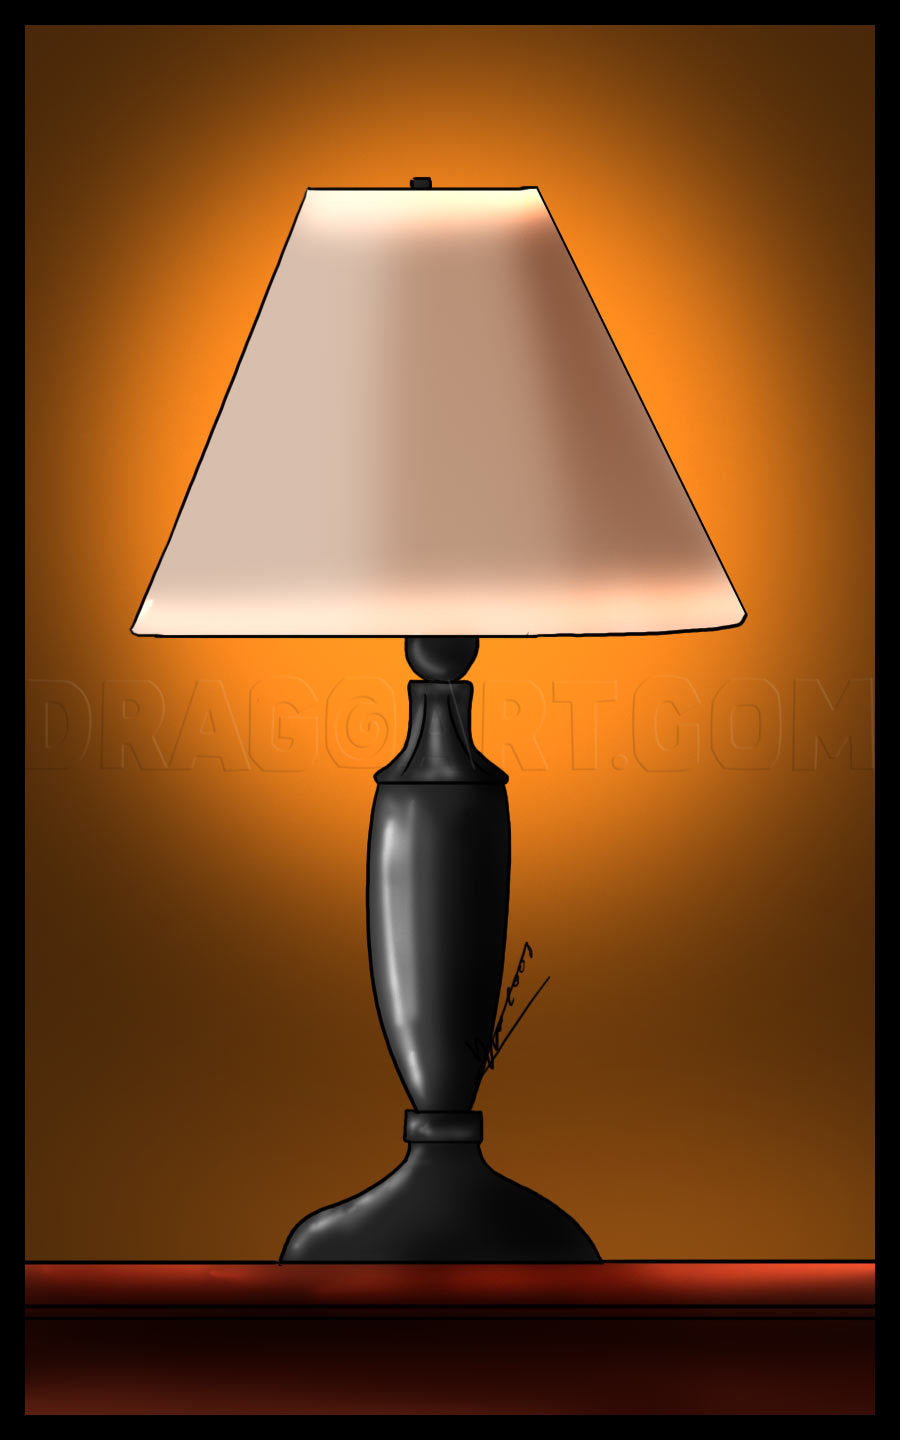 Lamp Drawing Easy : drawing, Lamp,, Step,, Drawing, Guide,, Dragoart.com